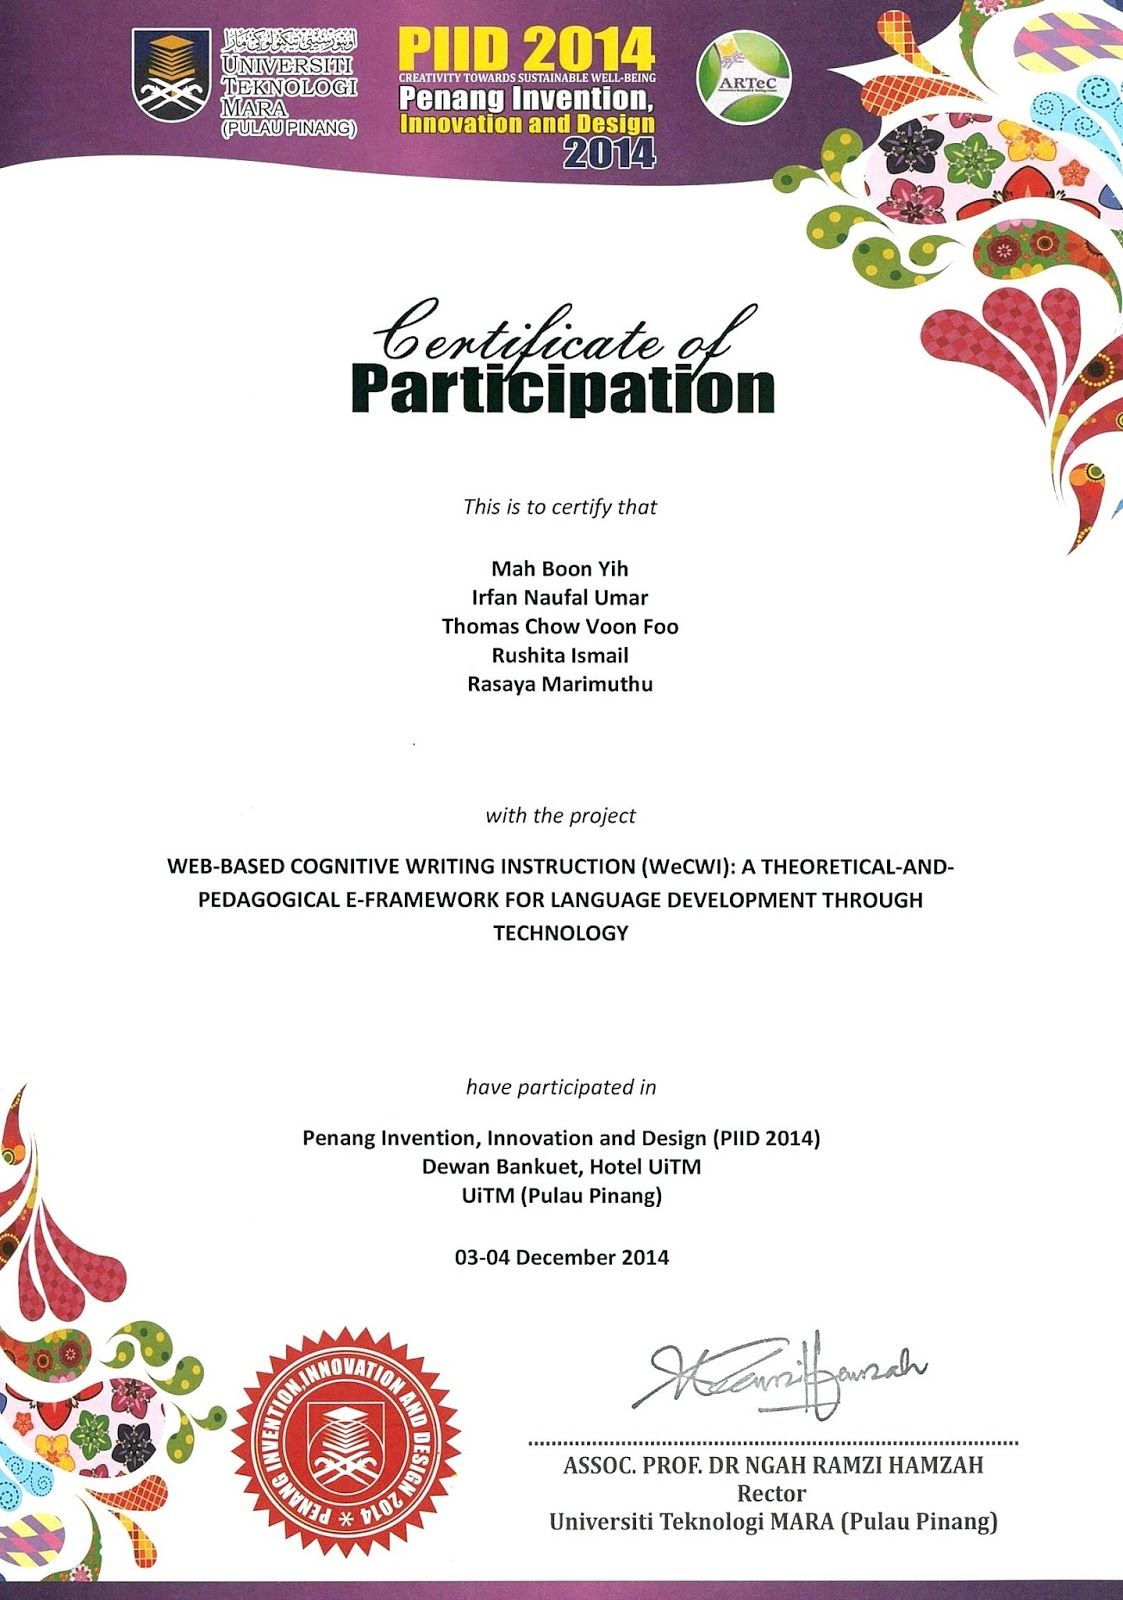 Penang Invention, Innovation And Design 2014 (PIID 2014): Certificate Of  Participation  Design Of Certificate Of Participation